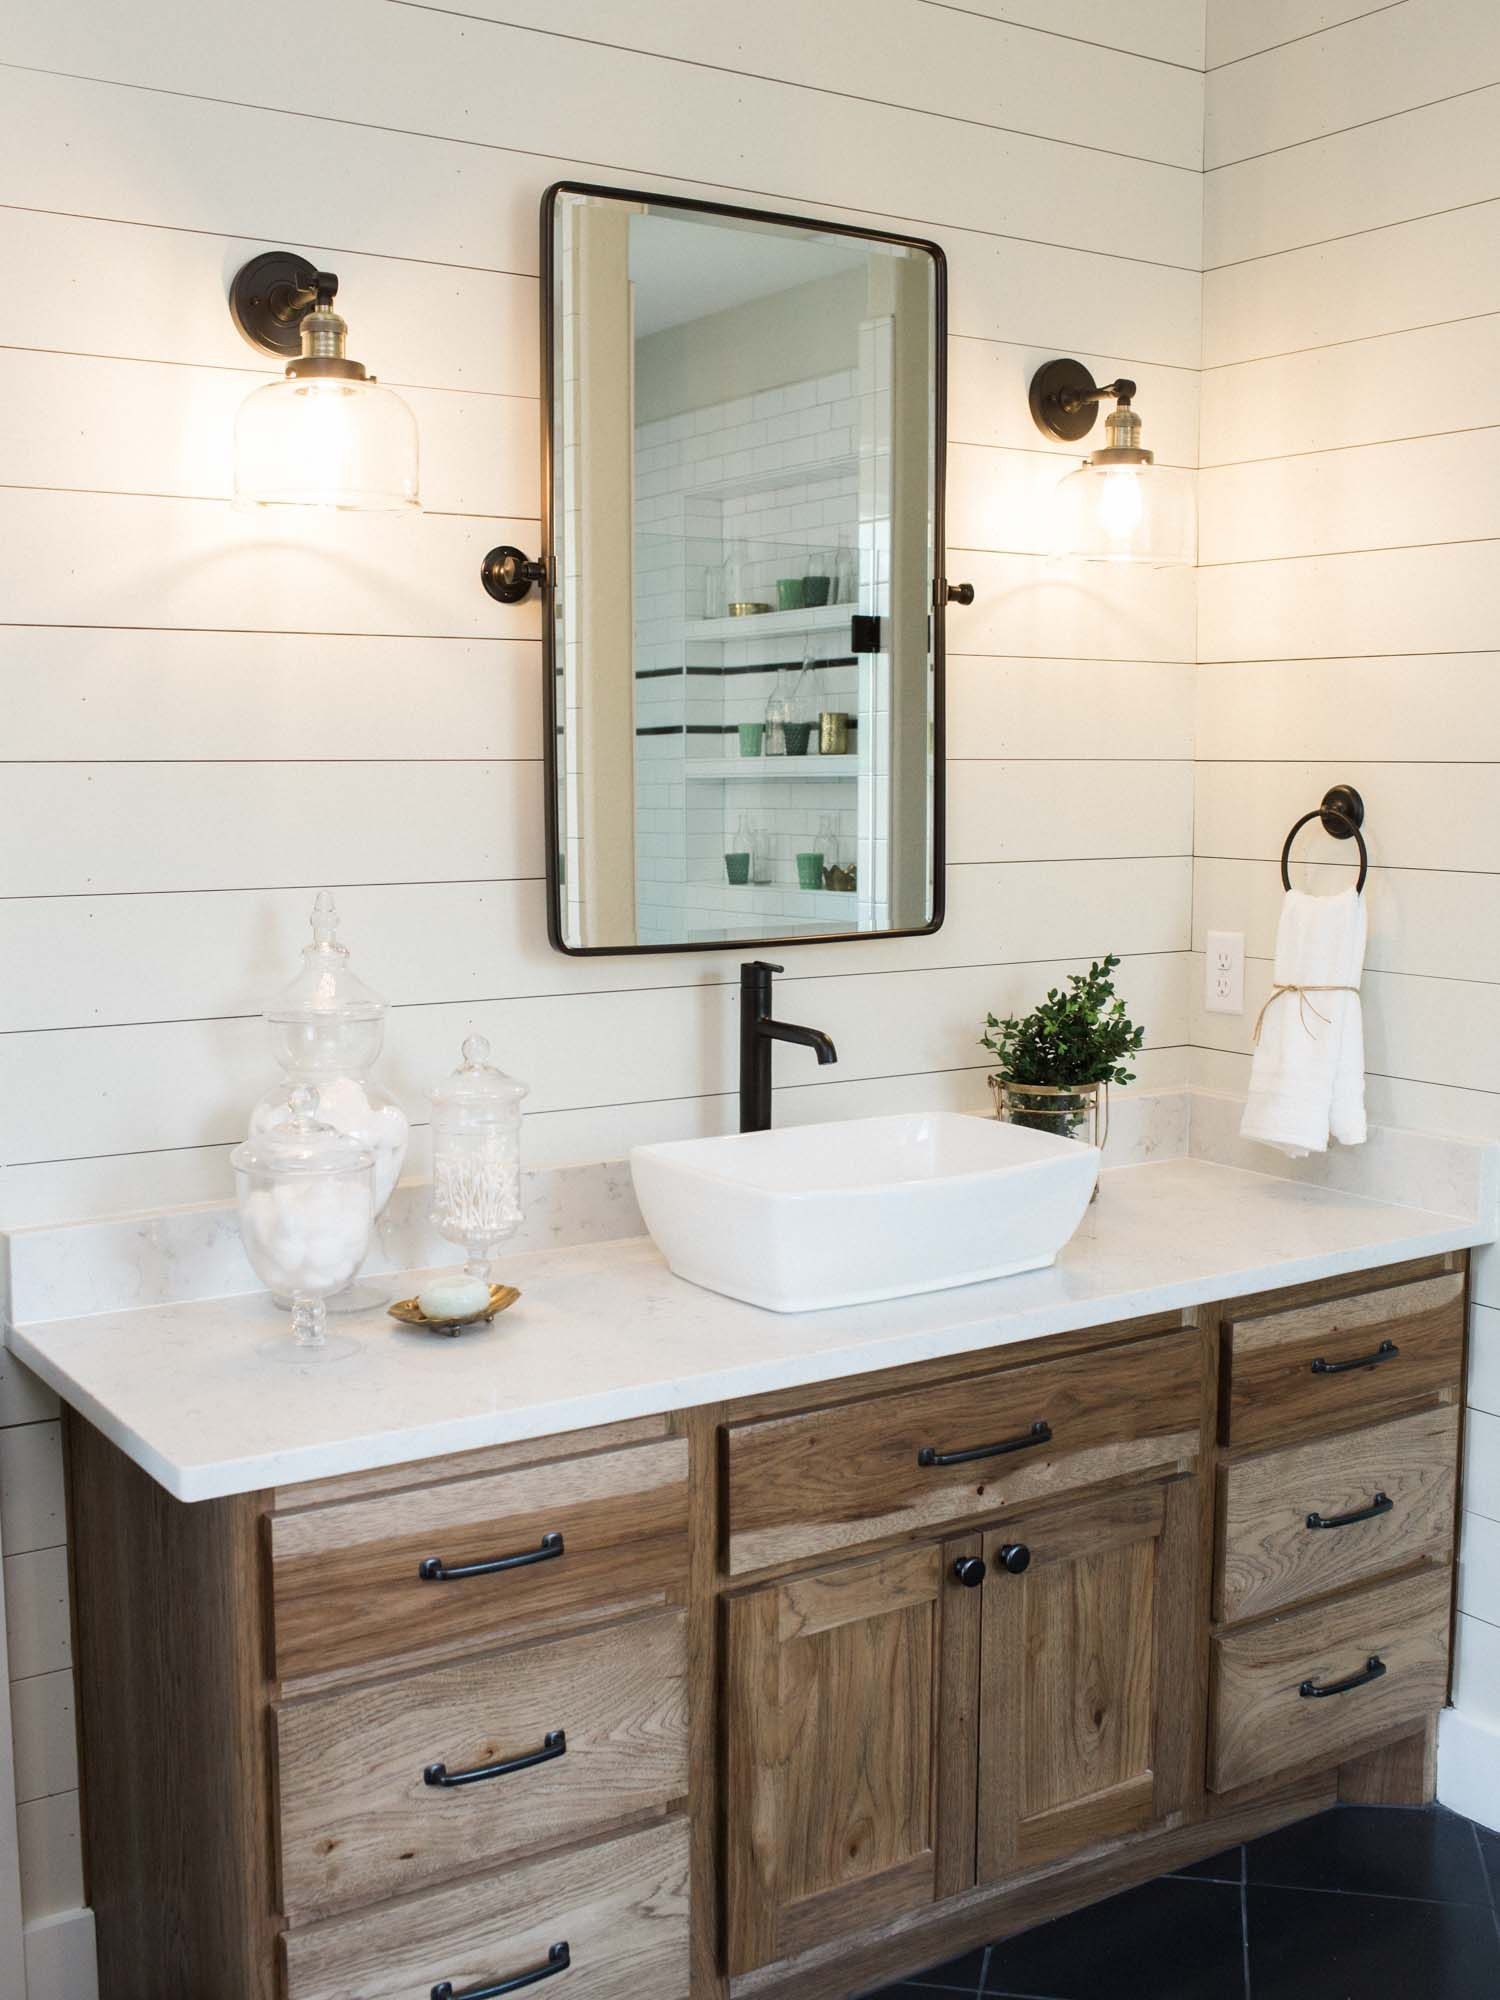 Master Bath Inspiration With Shiplap Wall Basin Sink